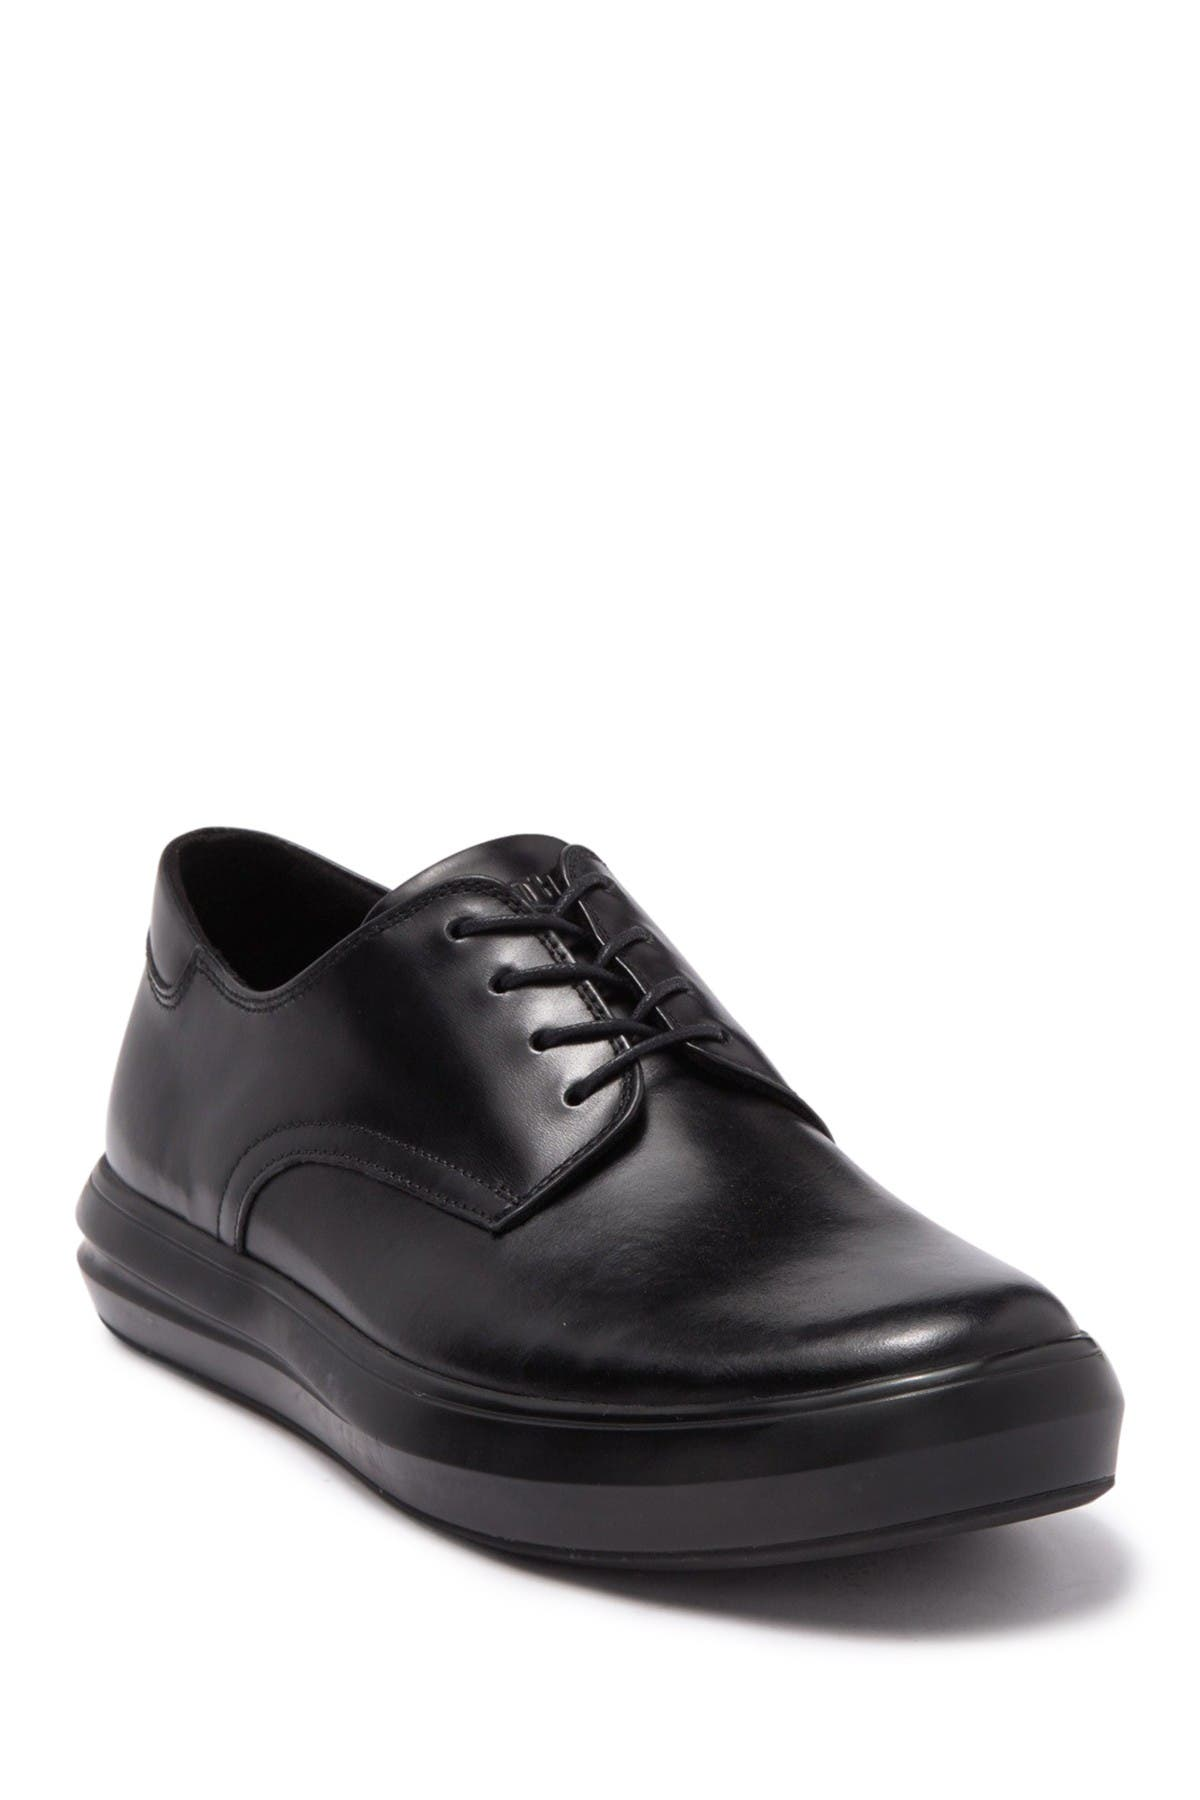 Image of Kenneth Cole New York The Mover Lace-Up Leather Sneaker